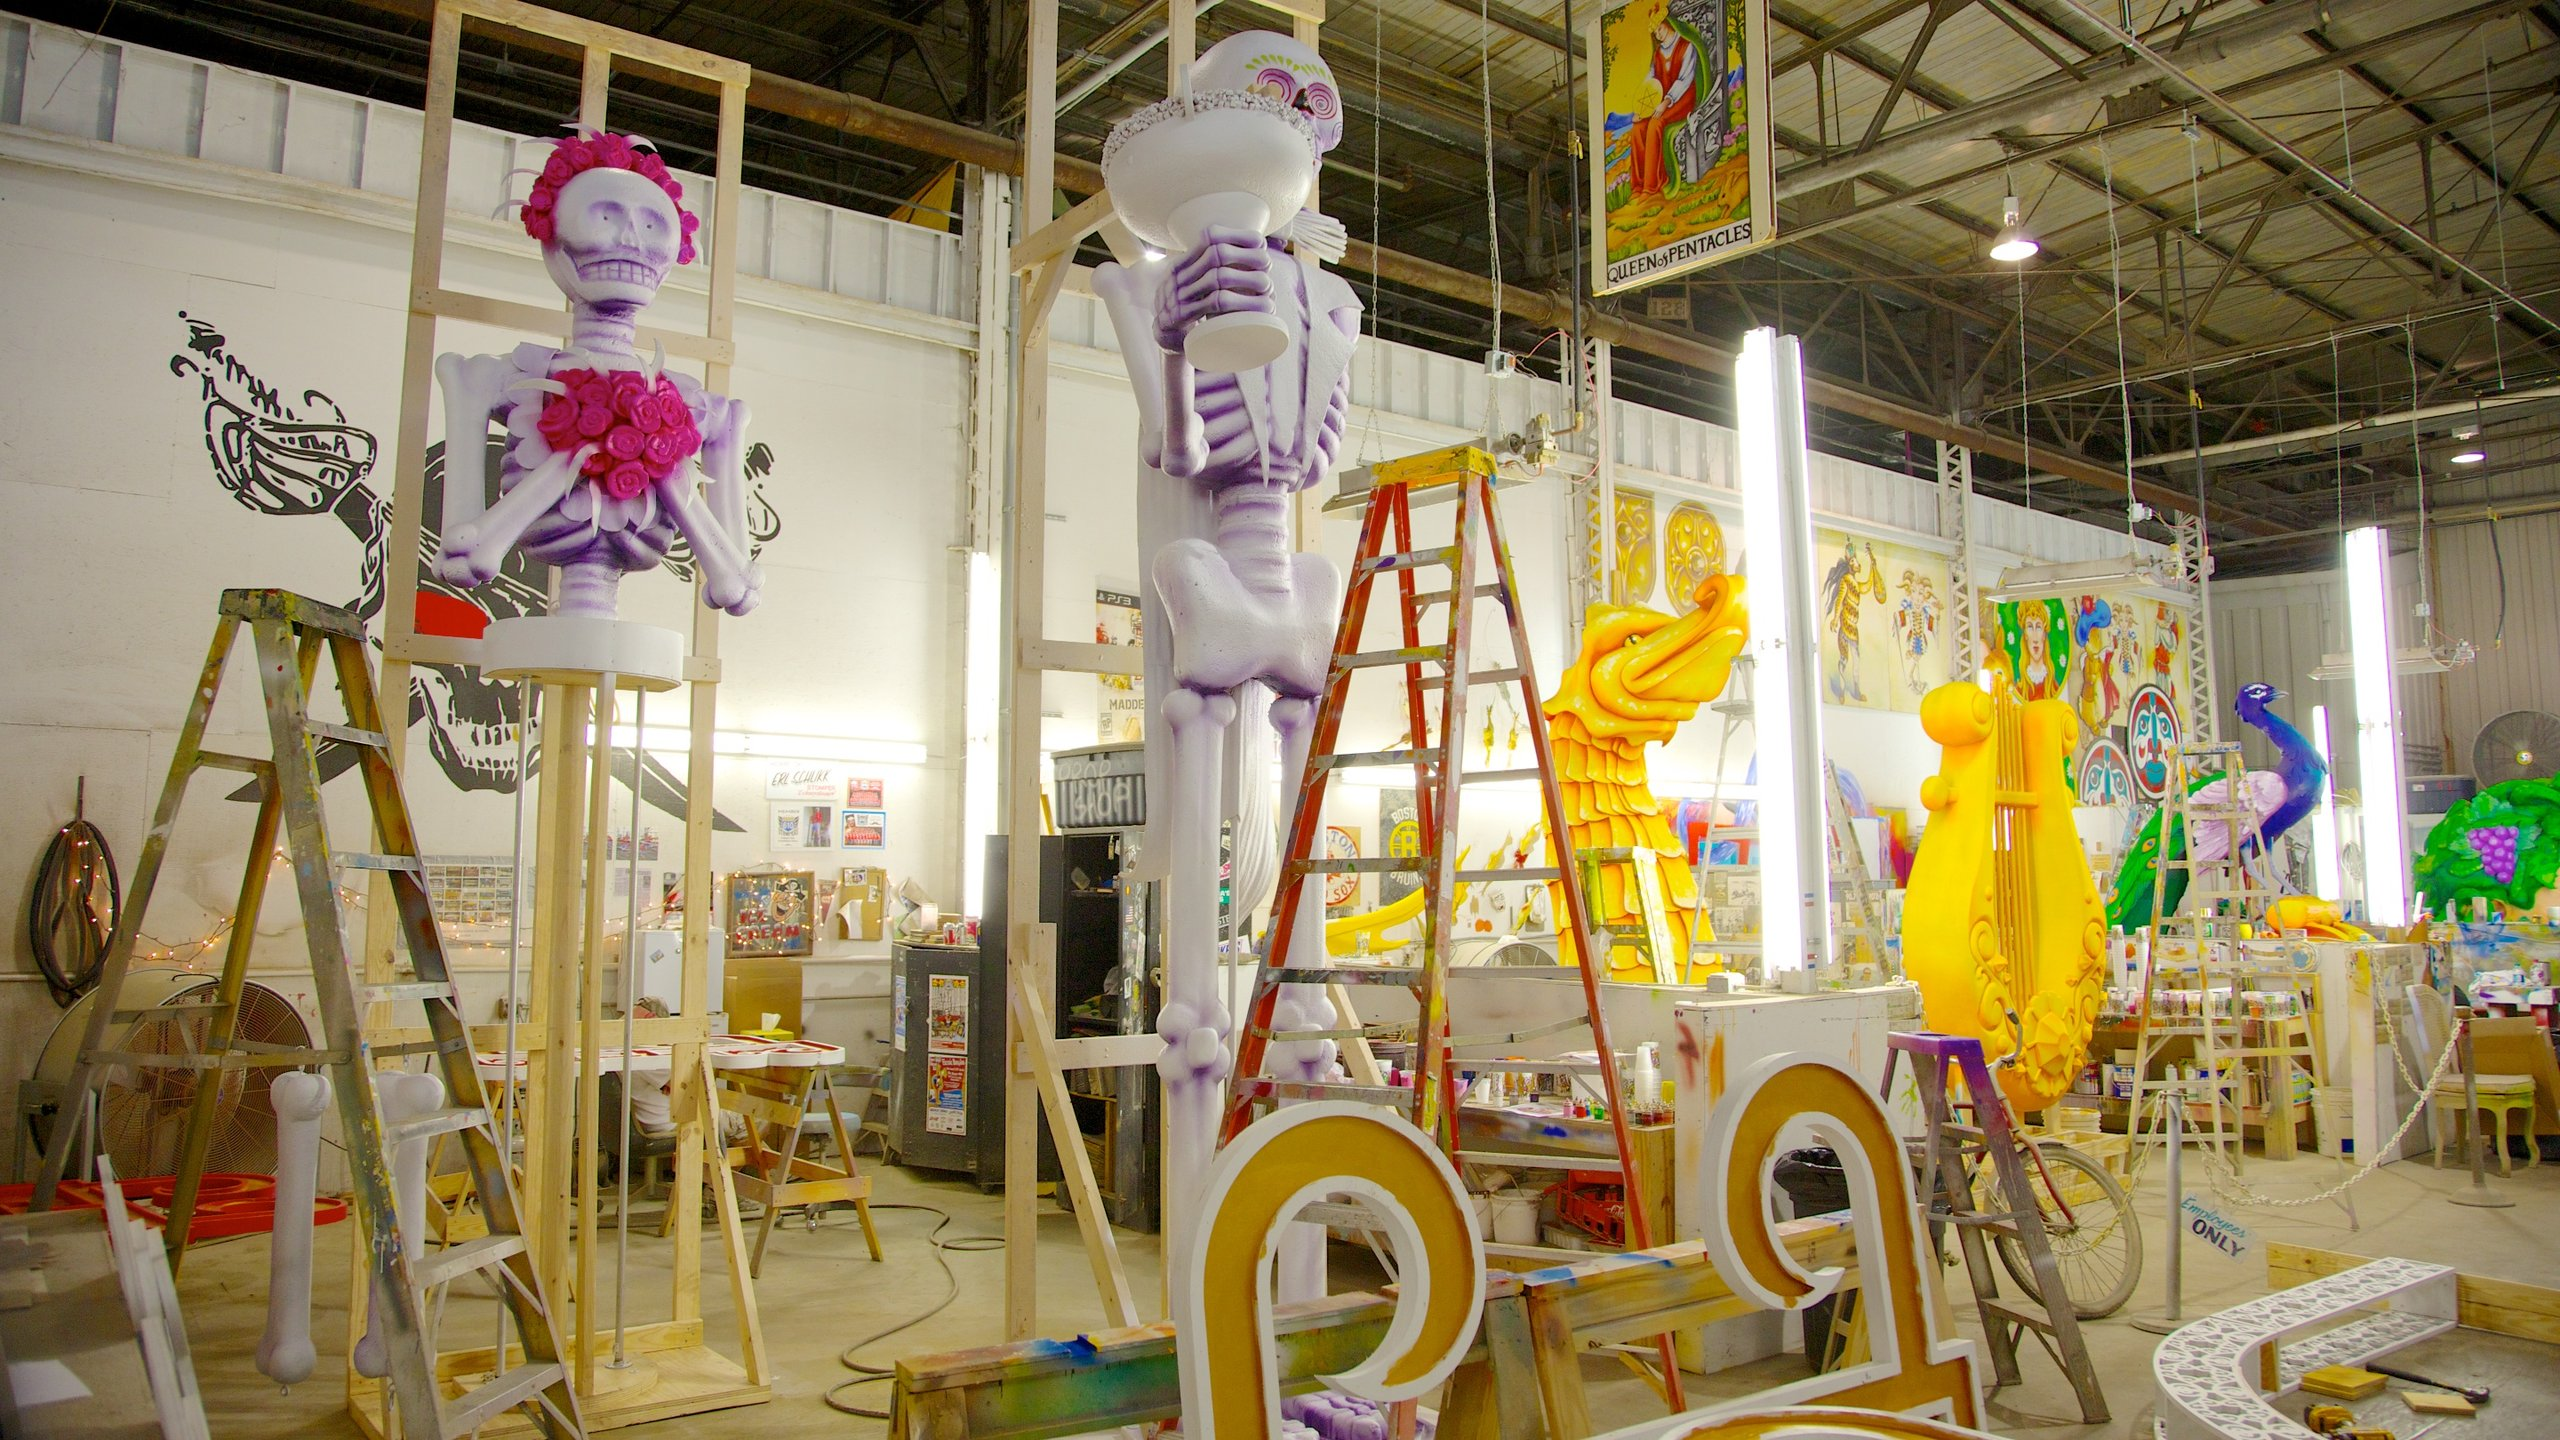 Mardi Gras World which includes interior views